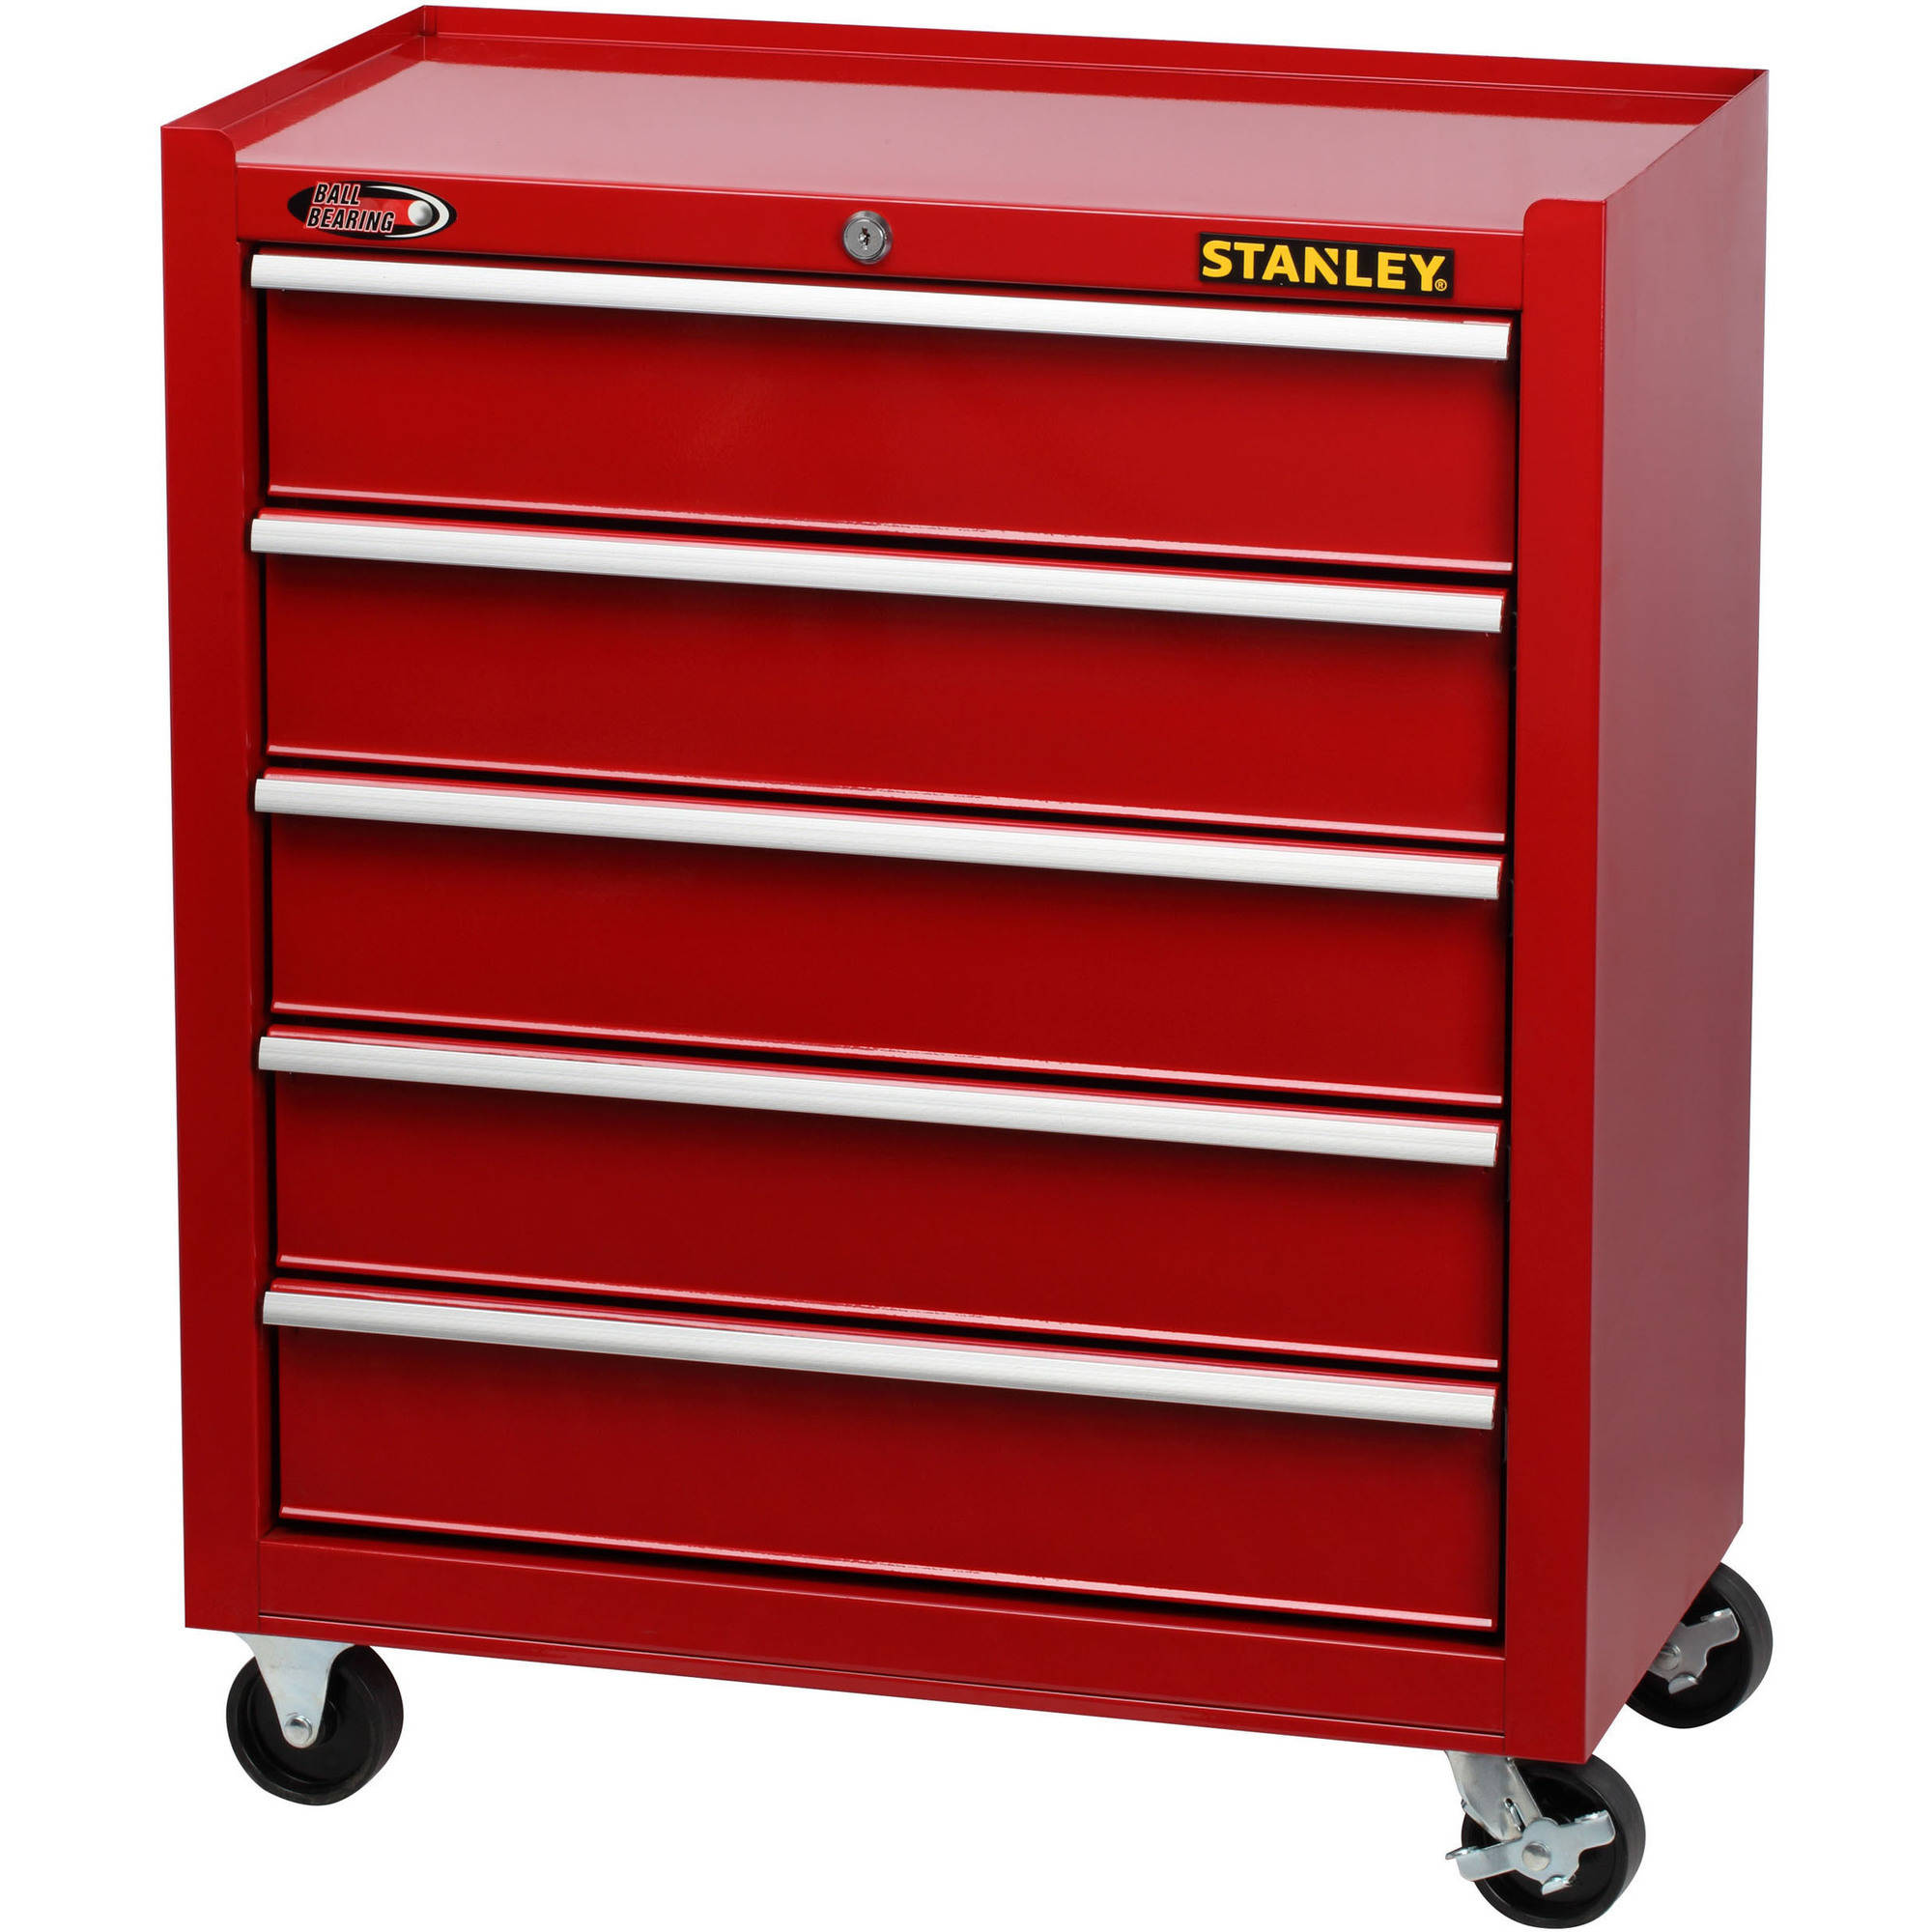 Stanley 5 Drawer Cabinet, Red